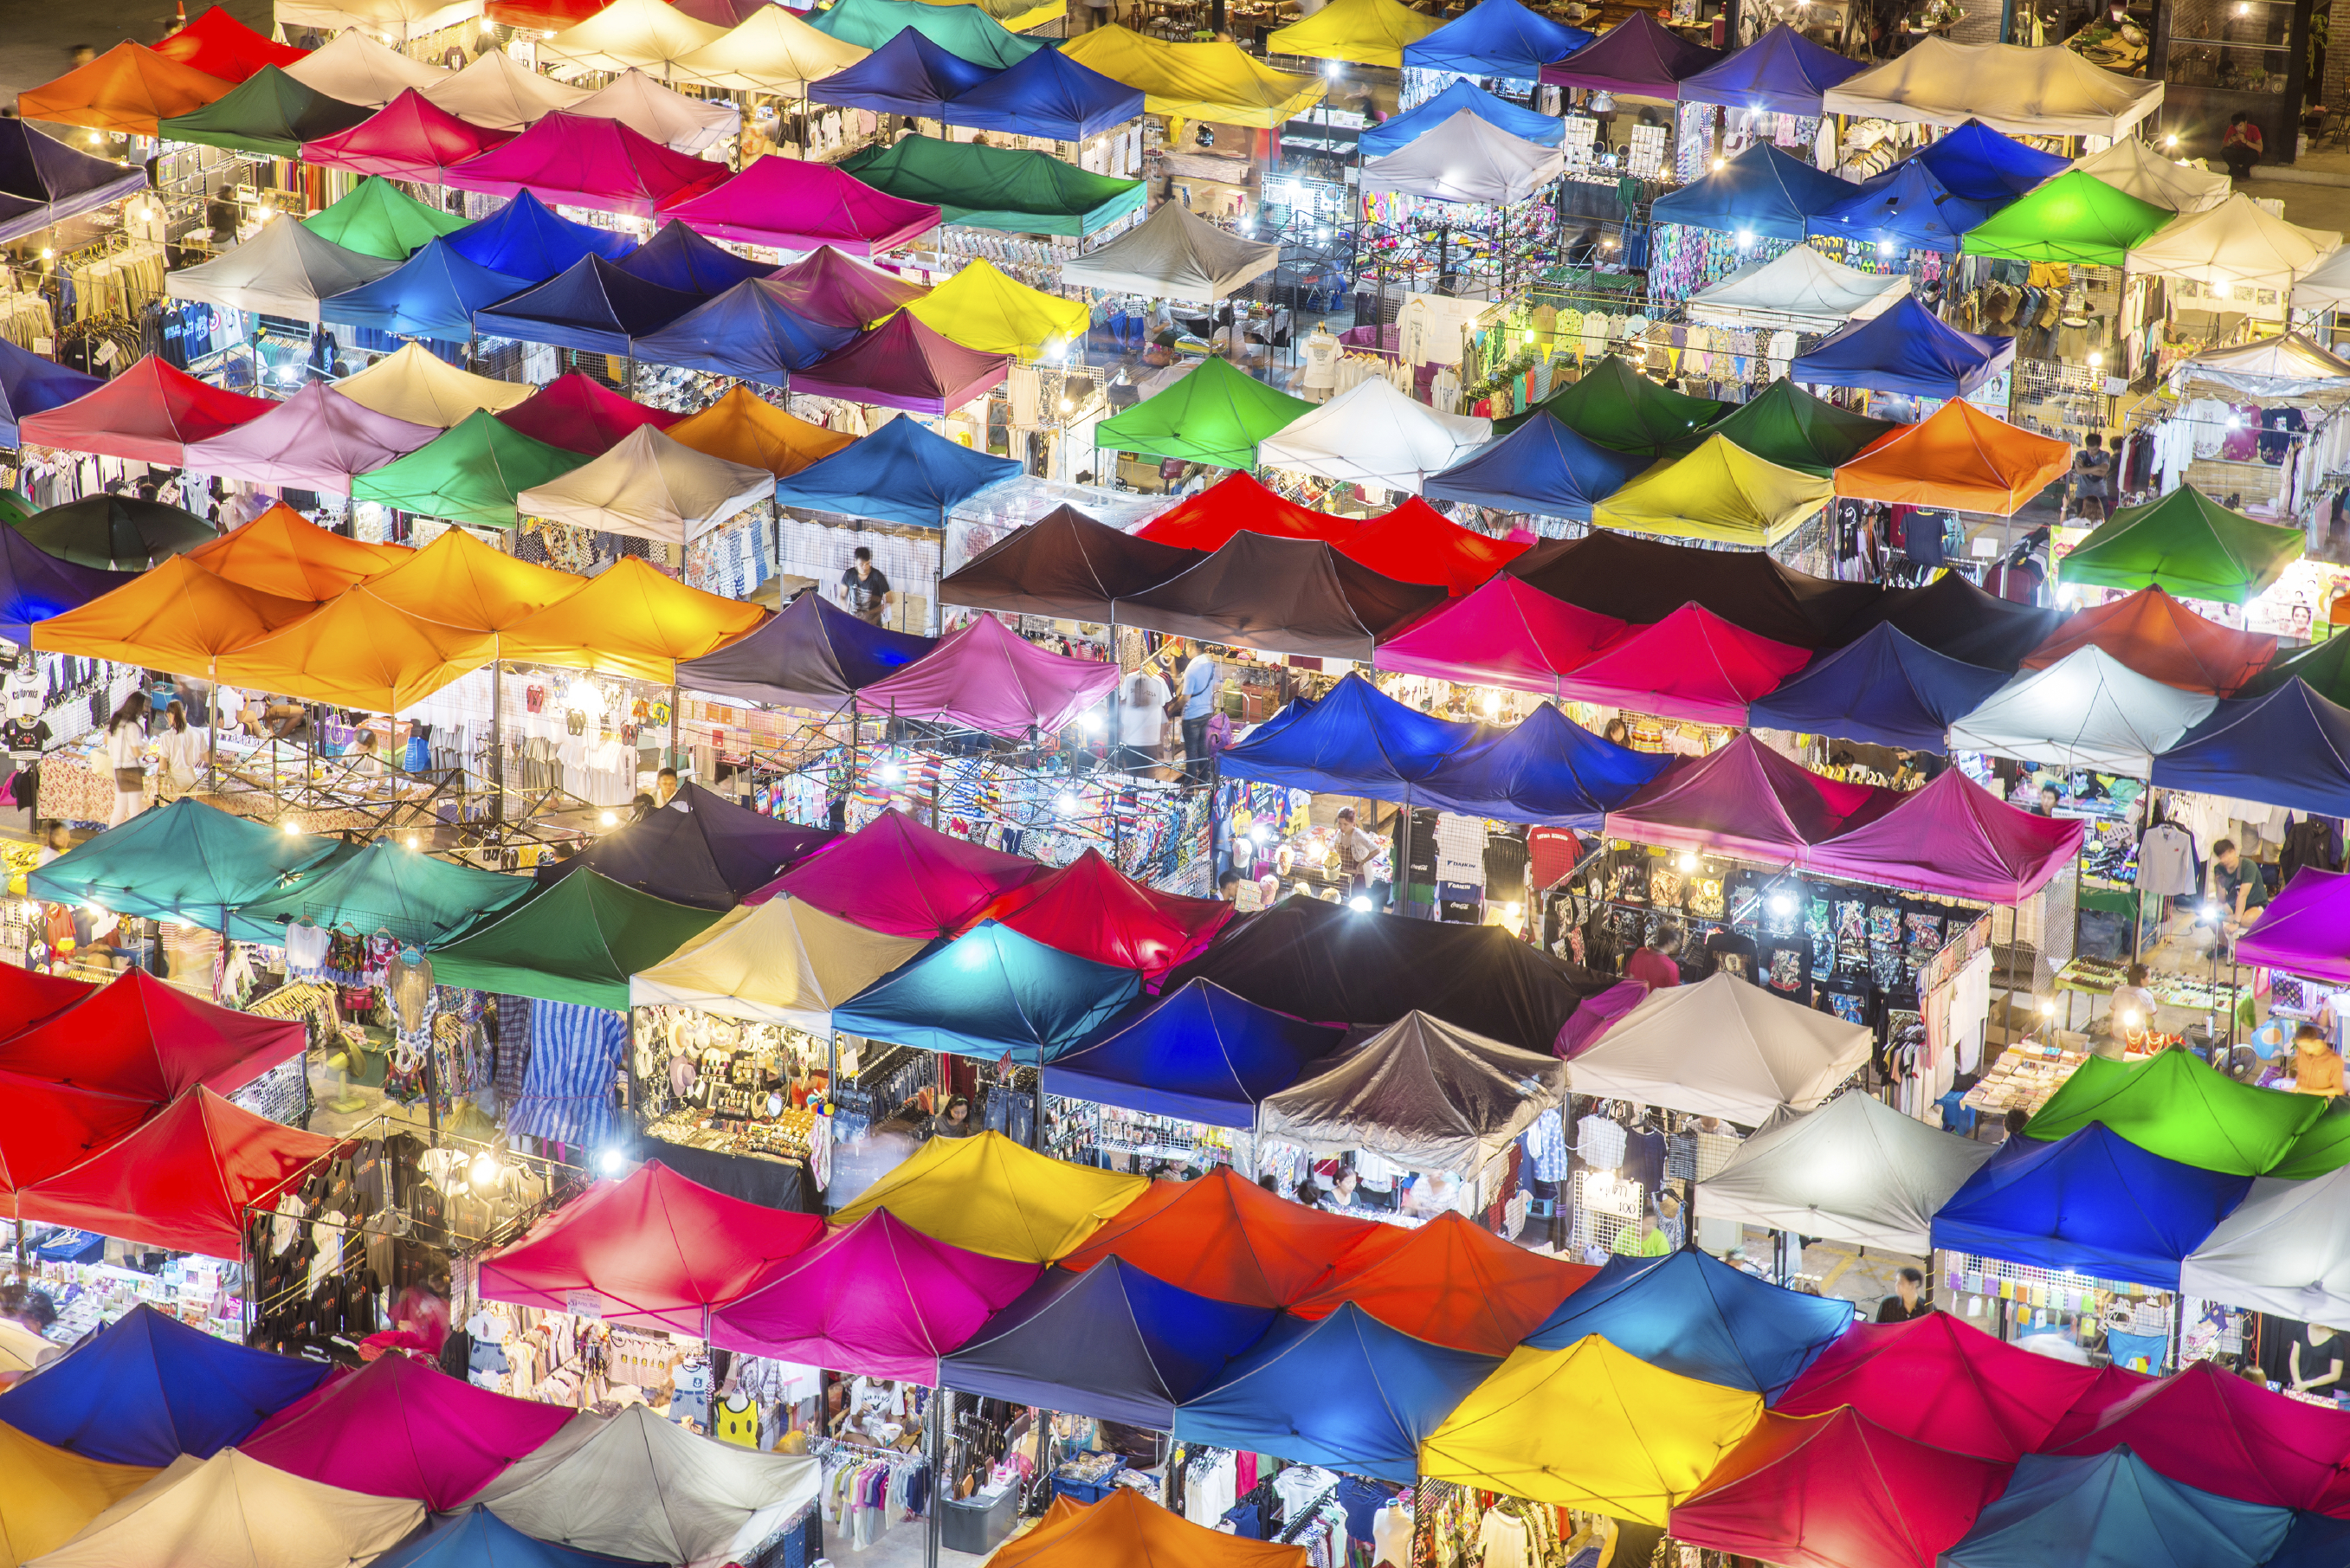 A look at a night market you can find in Hong Kong, one of the company's latest territories